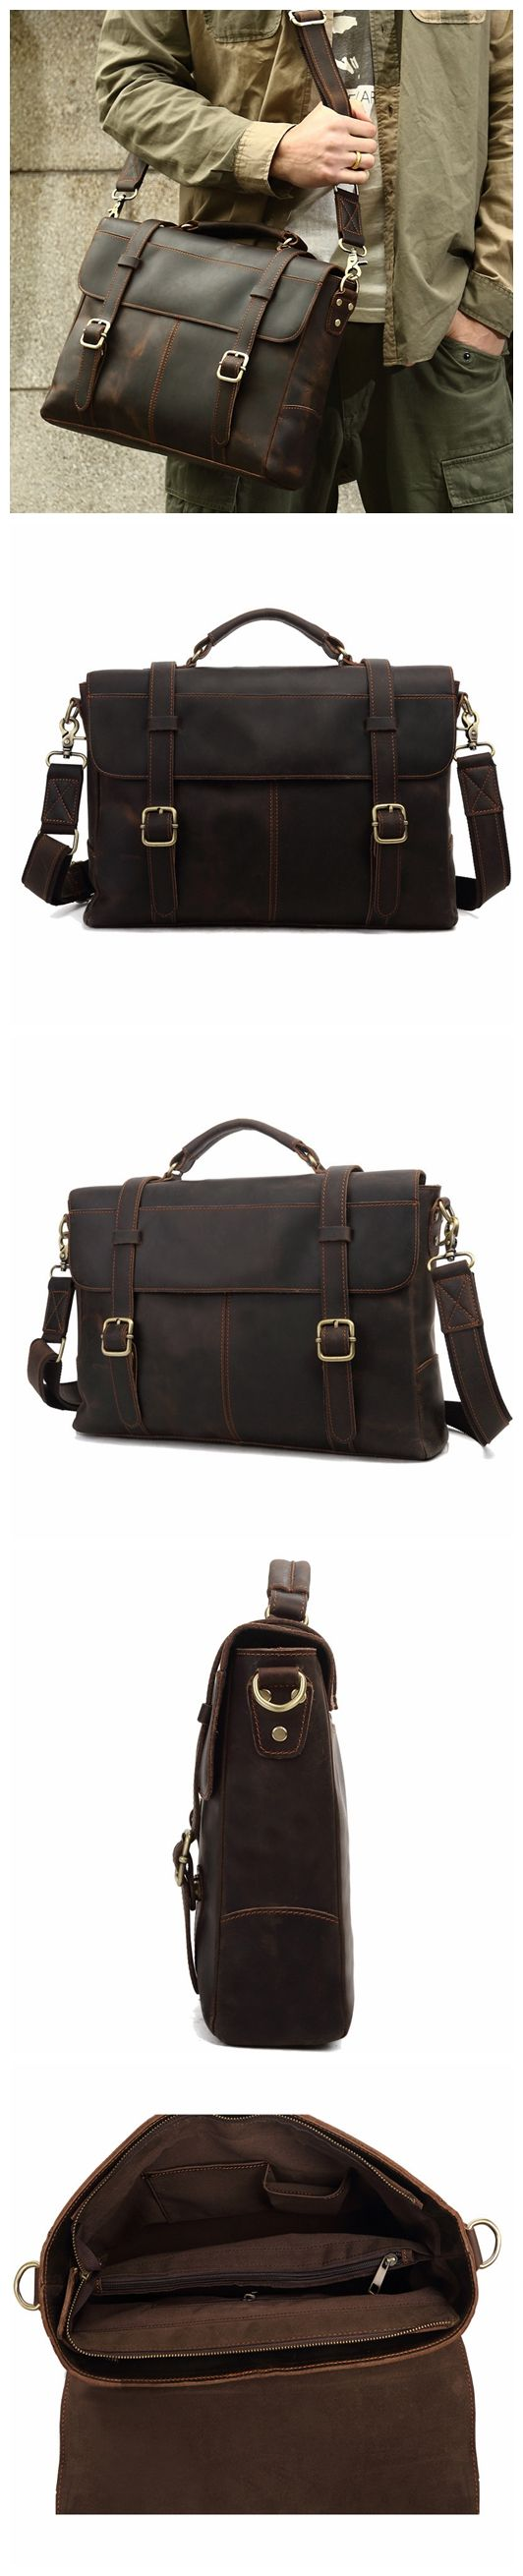 ROCKCOW Crazy Horse Leather Briefcase Messenger Bag Laptop Bag For Men 8657